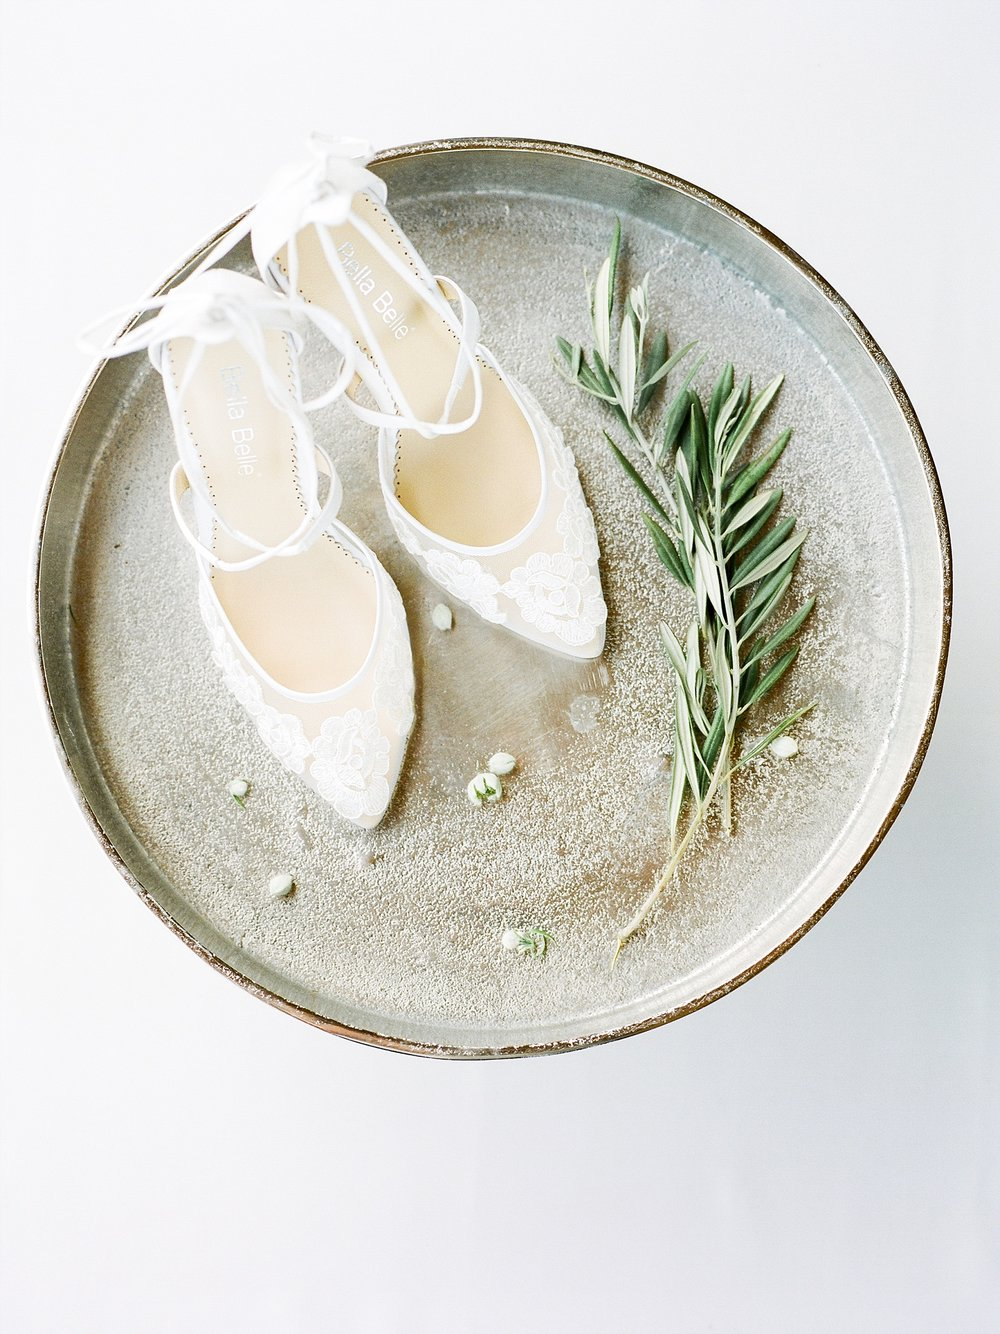 Textural Organic Wedding in All White Venue by Kelsi Kliethermes Wedding Photographer - Missouri, Midwest, and Destinations_0017.jpg